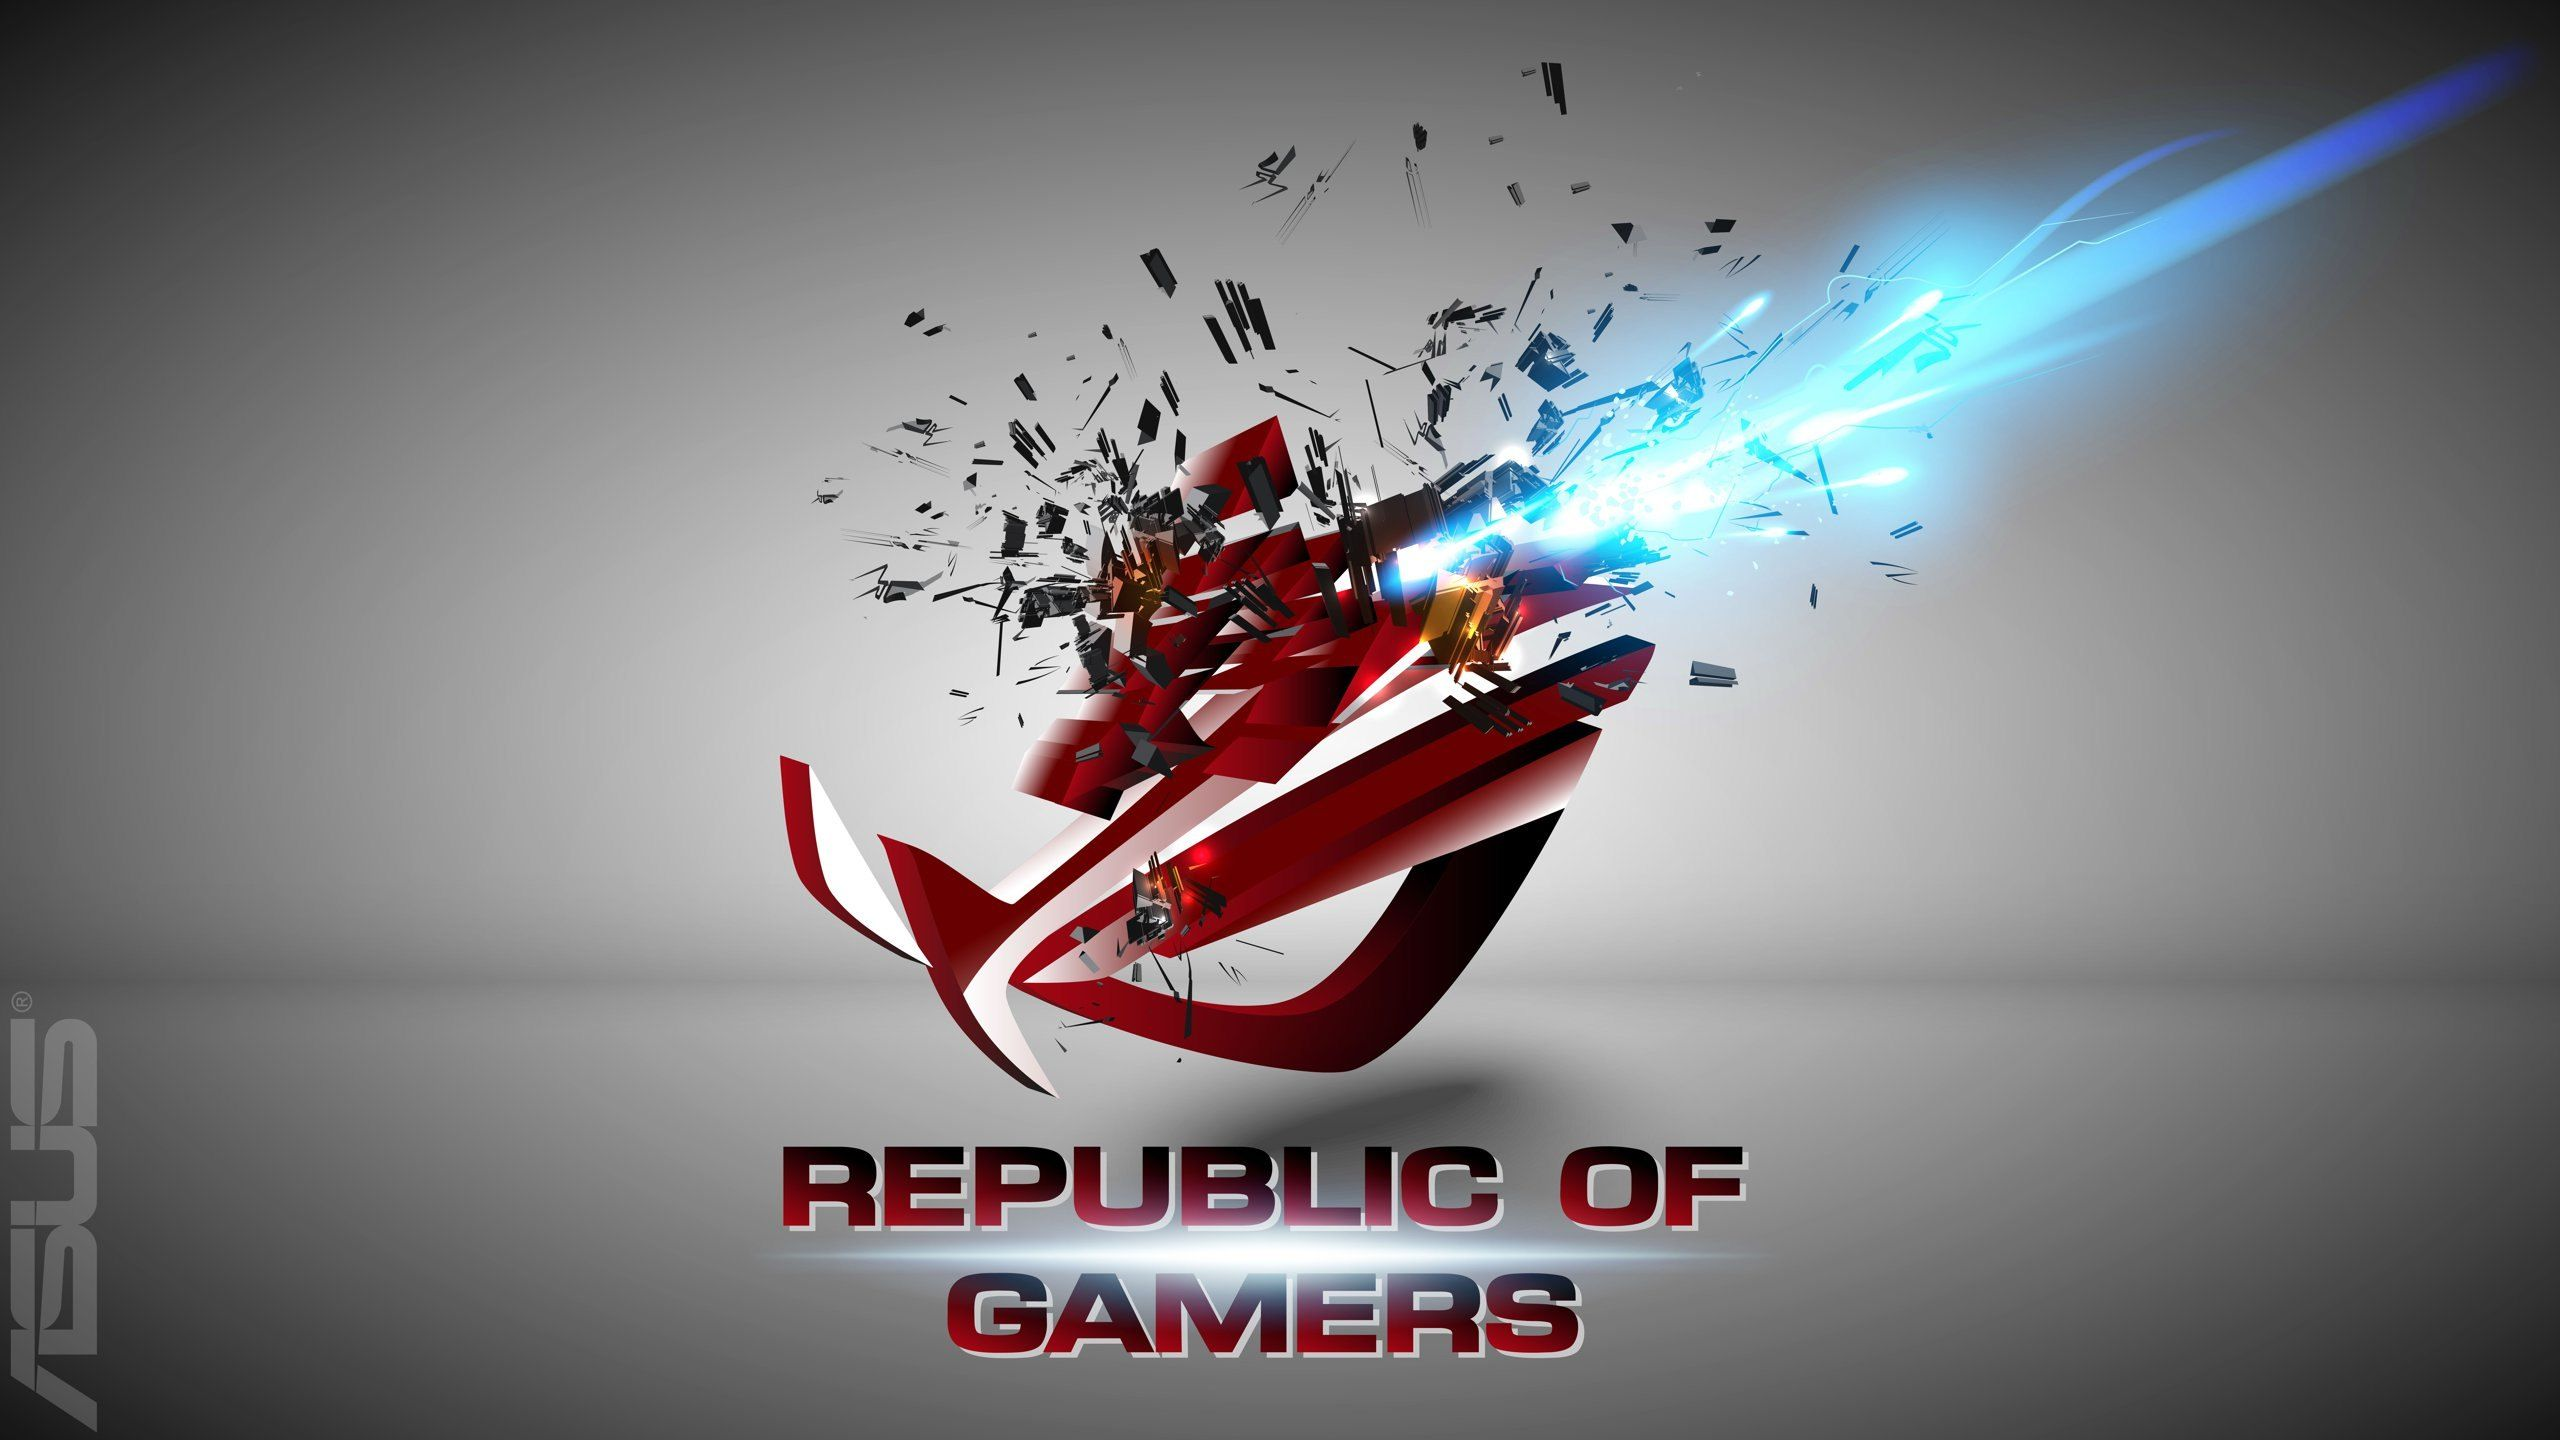 1131x707 ASUS Republic Of Gamers Wallpaper Pack V2 By BlaCkOuT1911 On DeviantArt